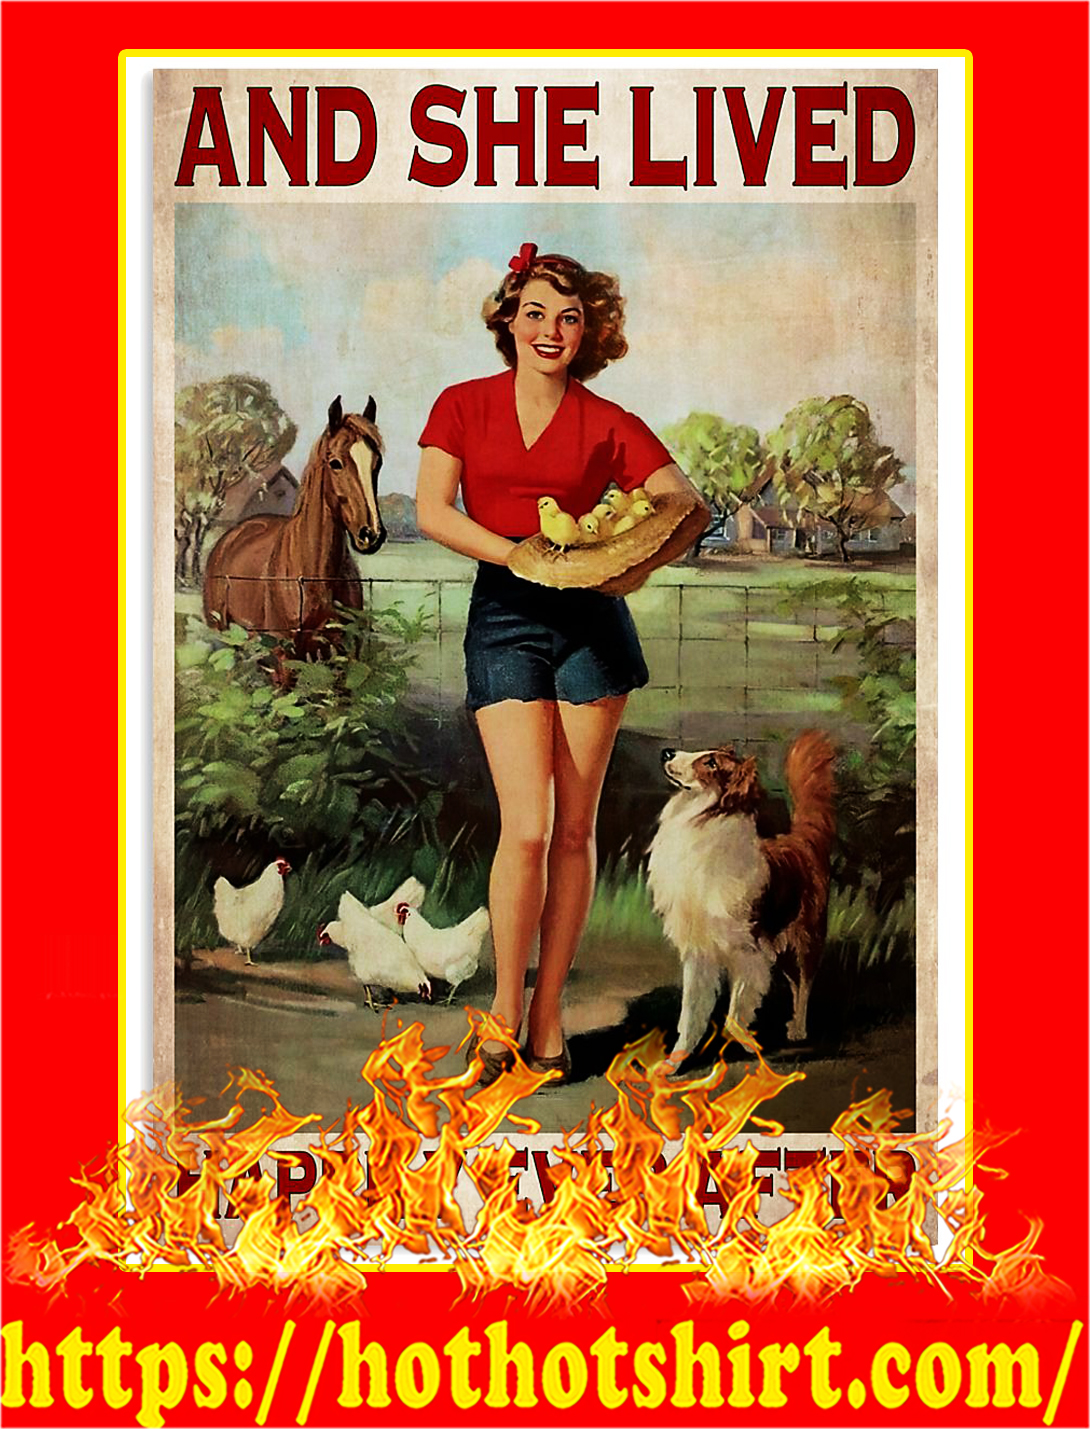 Horse dog chicken And she lived happily ever after poster